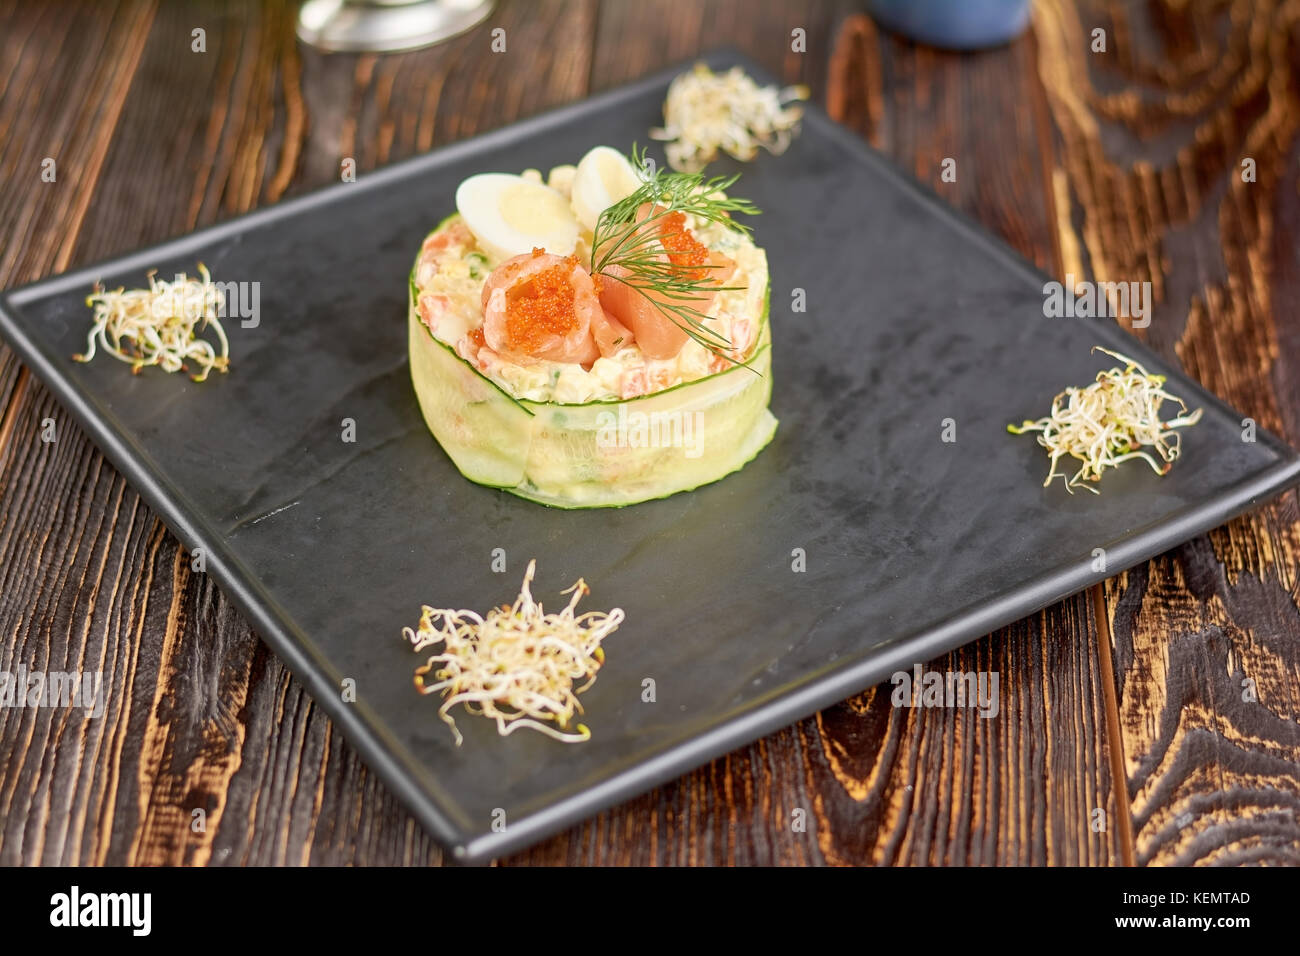 Olivier salad with salmon and tobiko caviar. Appetizing olivier salad on plate in restaurant. Delicious dinner on - Stock Image